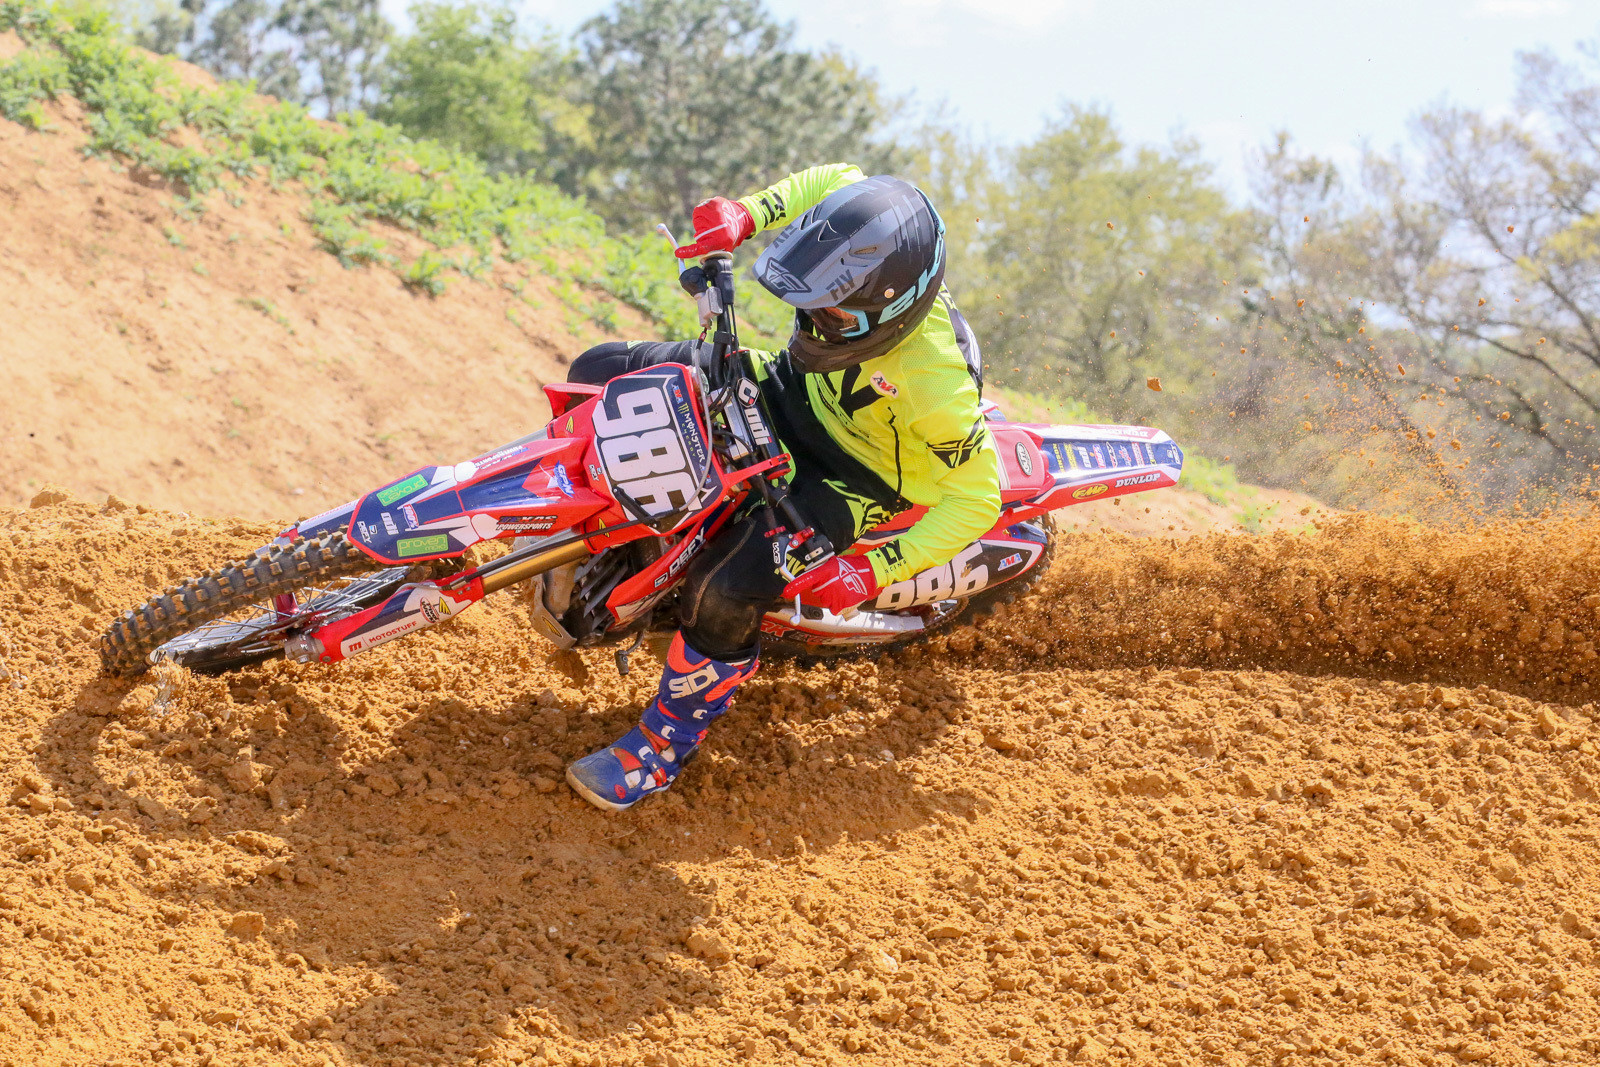 As of now, Lane Shaw may be better-known as the guy who threw it away in the 250 LCQ in Arlington, but he's impressed quite a few people with his speed, and he's been working with Tim for a bit now.